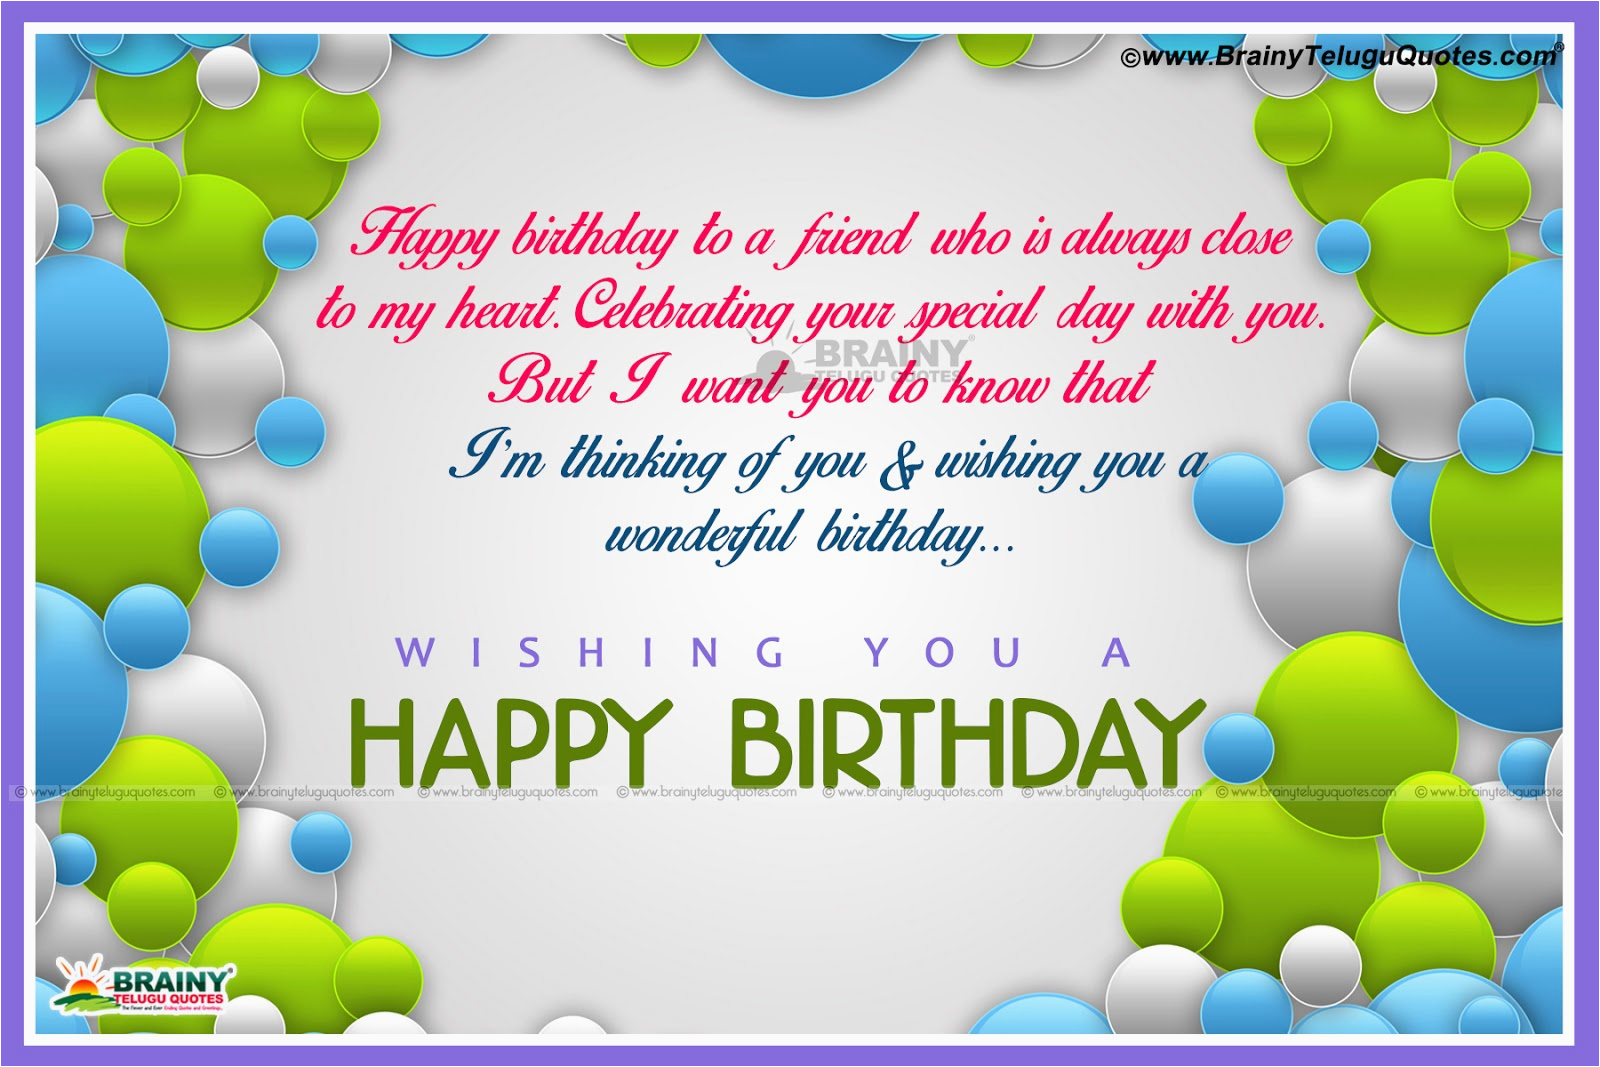 best friend birthday wishes quotes messages images greeting cards